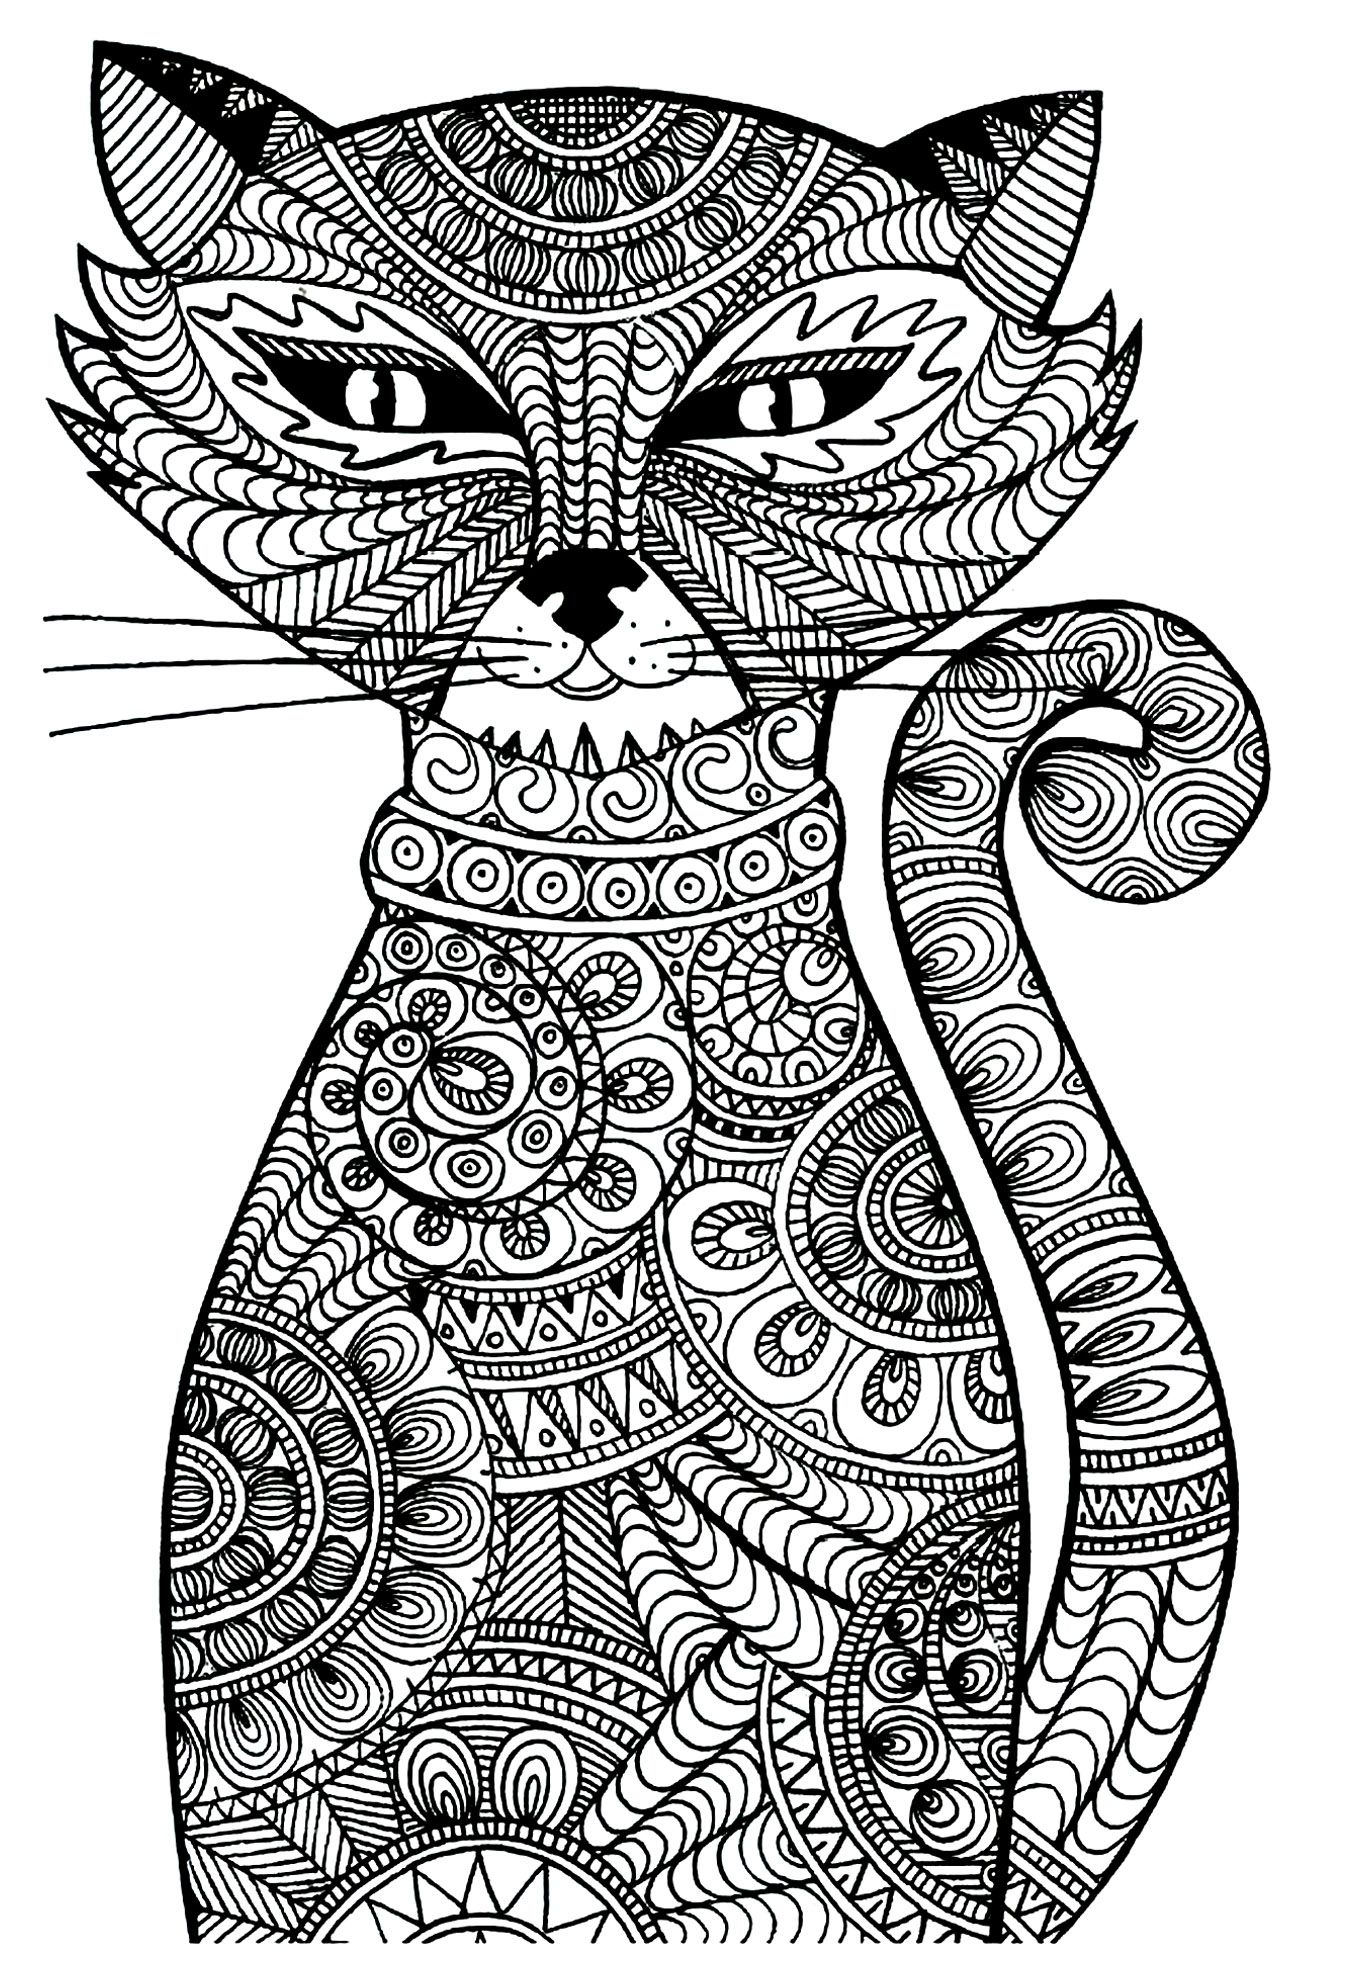 100 Free Coloring Pages for Adults and Children | Mandalas, Colorear ...